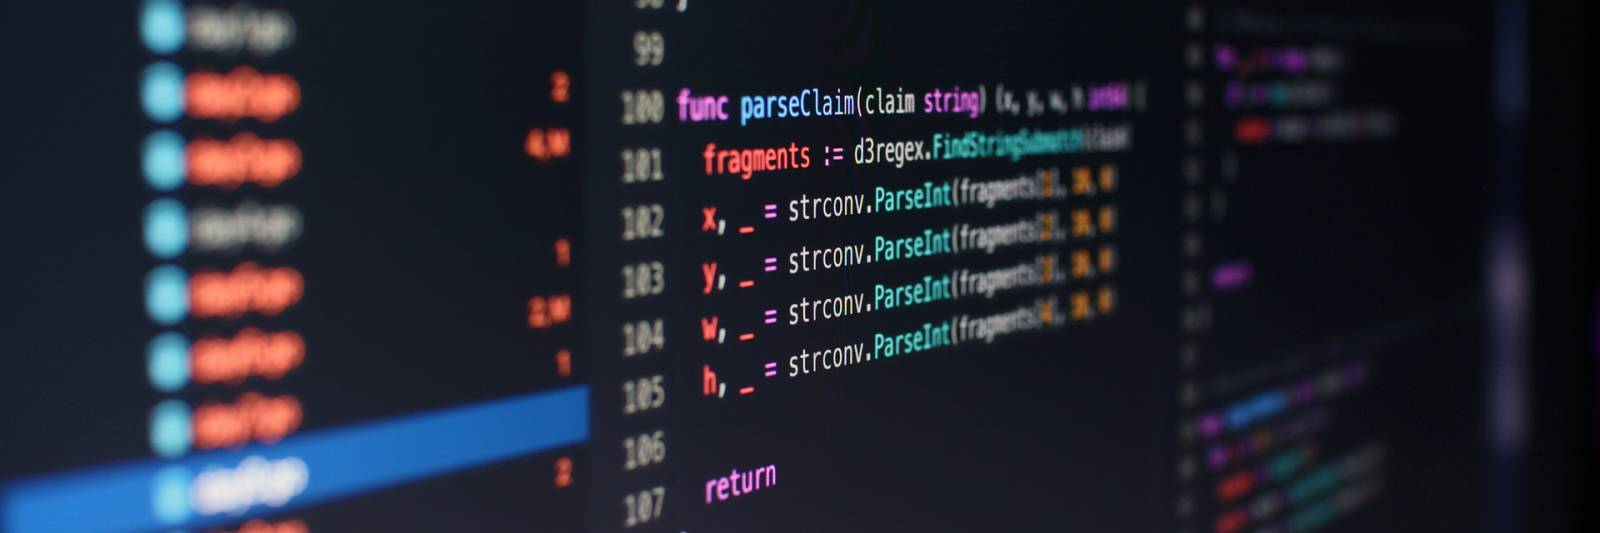 Golang Xml Parser Vulnerability Could Enable Saml Authentication Bypass